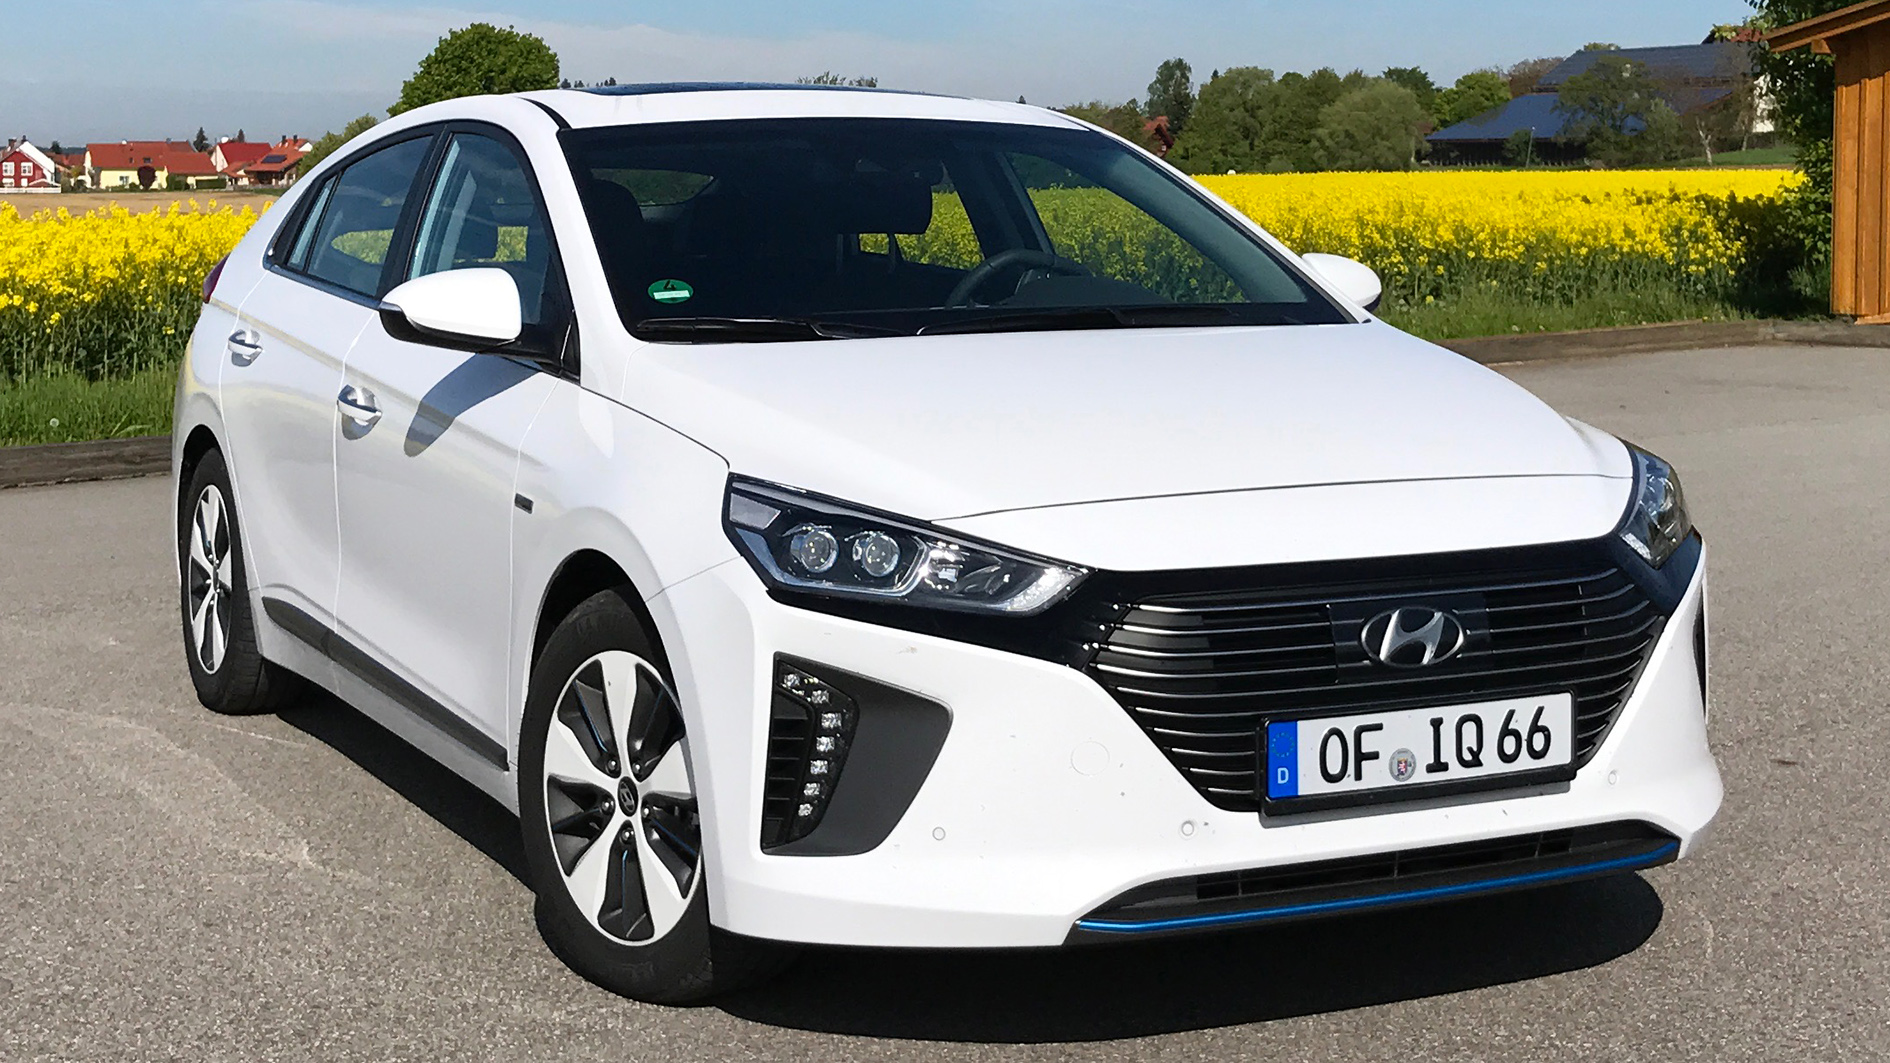 Hyundai Inoiq Plug In Hybrid Phev 2017 Review Driving Report Image Http Quickcarreview